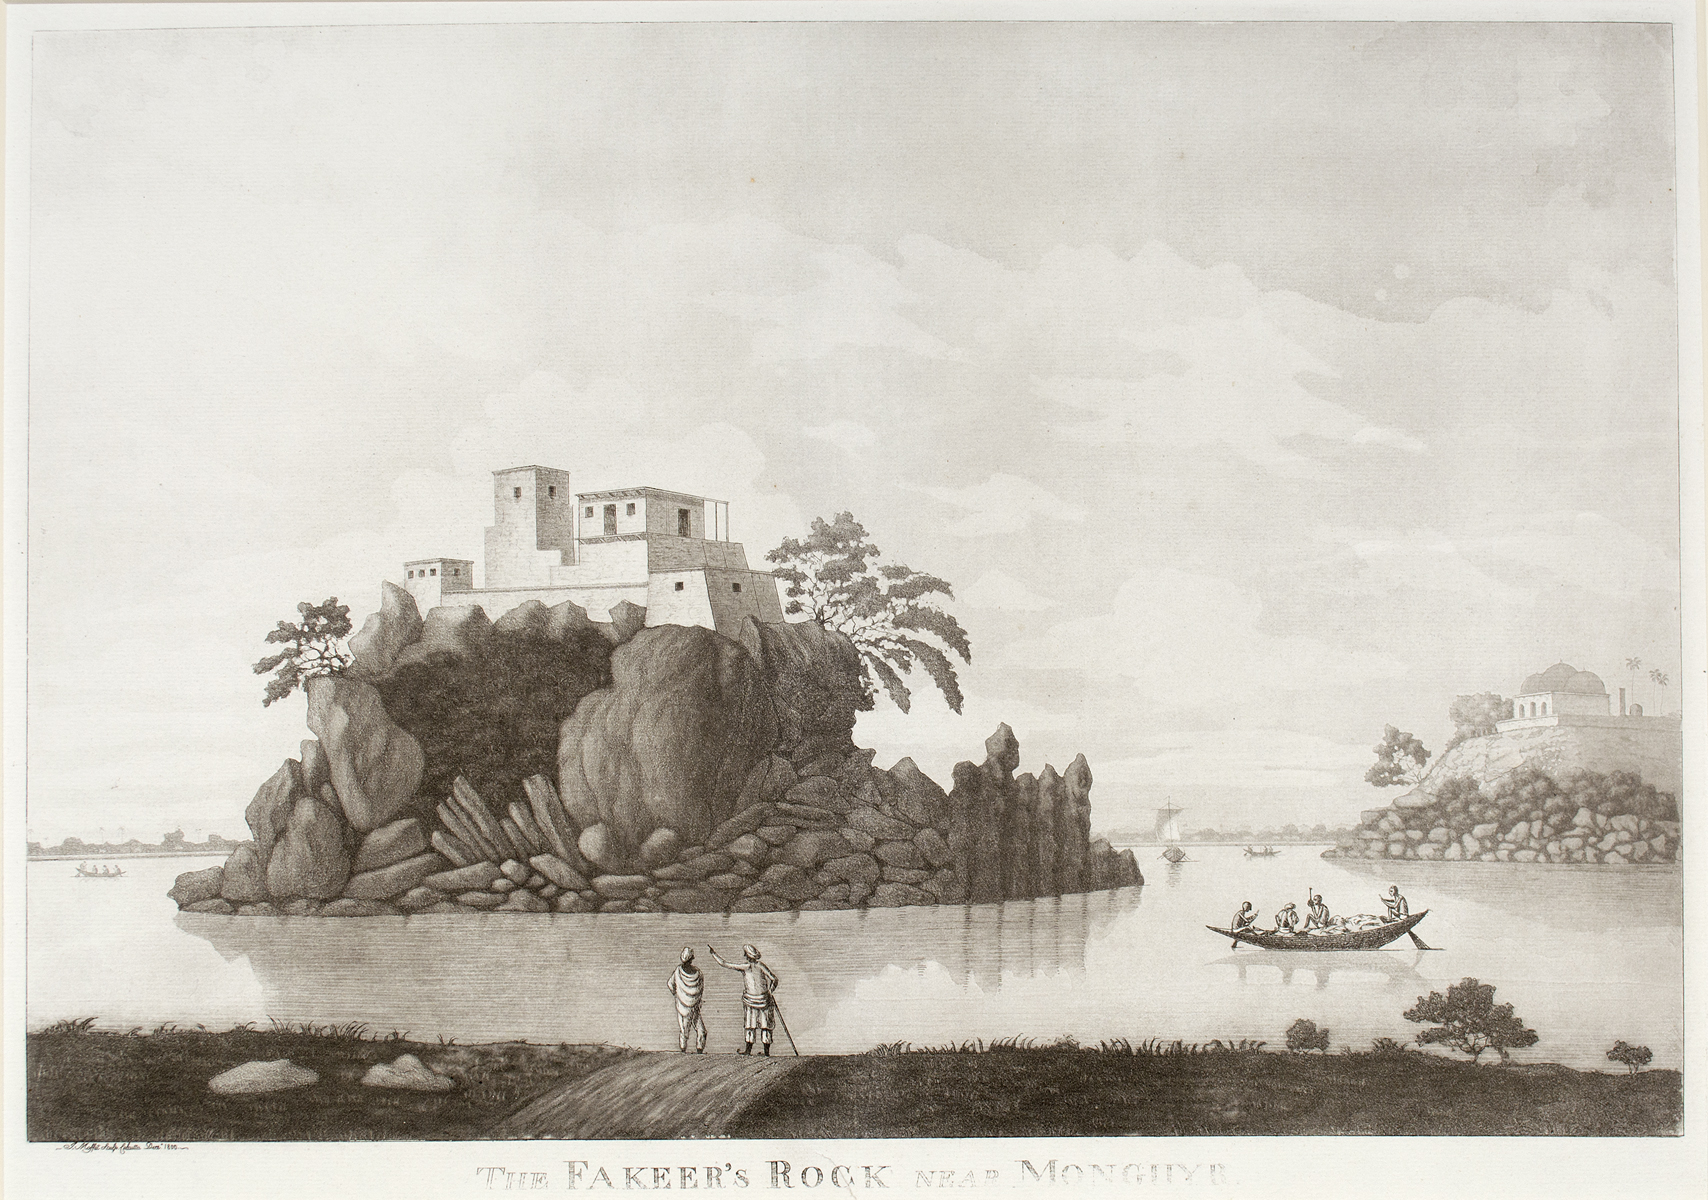 VIEW OF THE PALACE AT GHAZIPORE  &  THE FAKEER'S ROCK NEAR MONGHYR